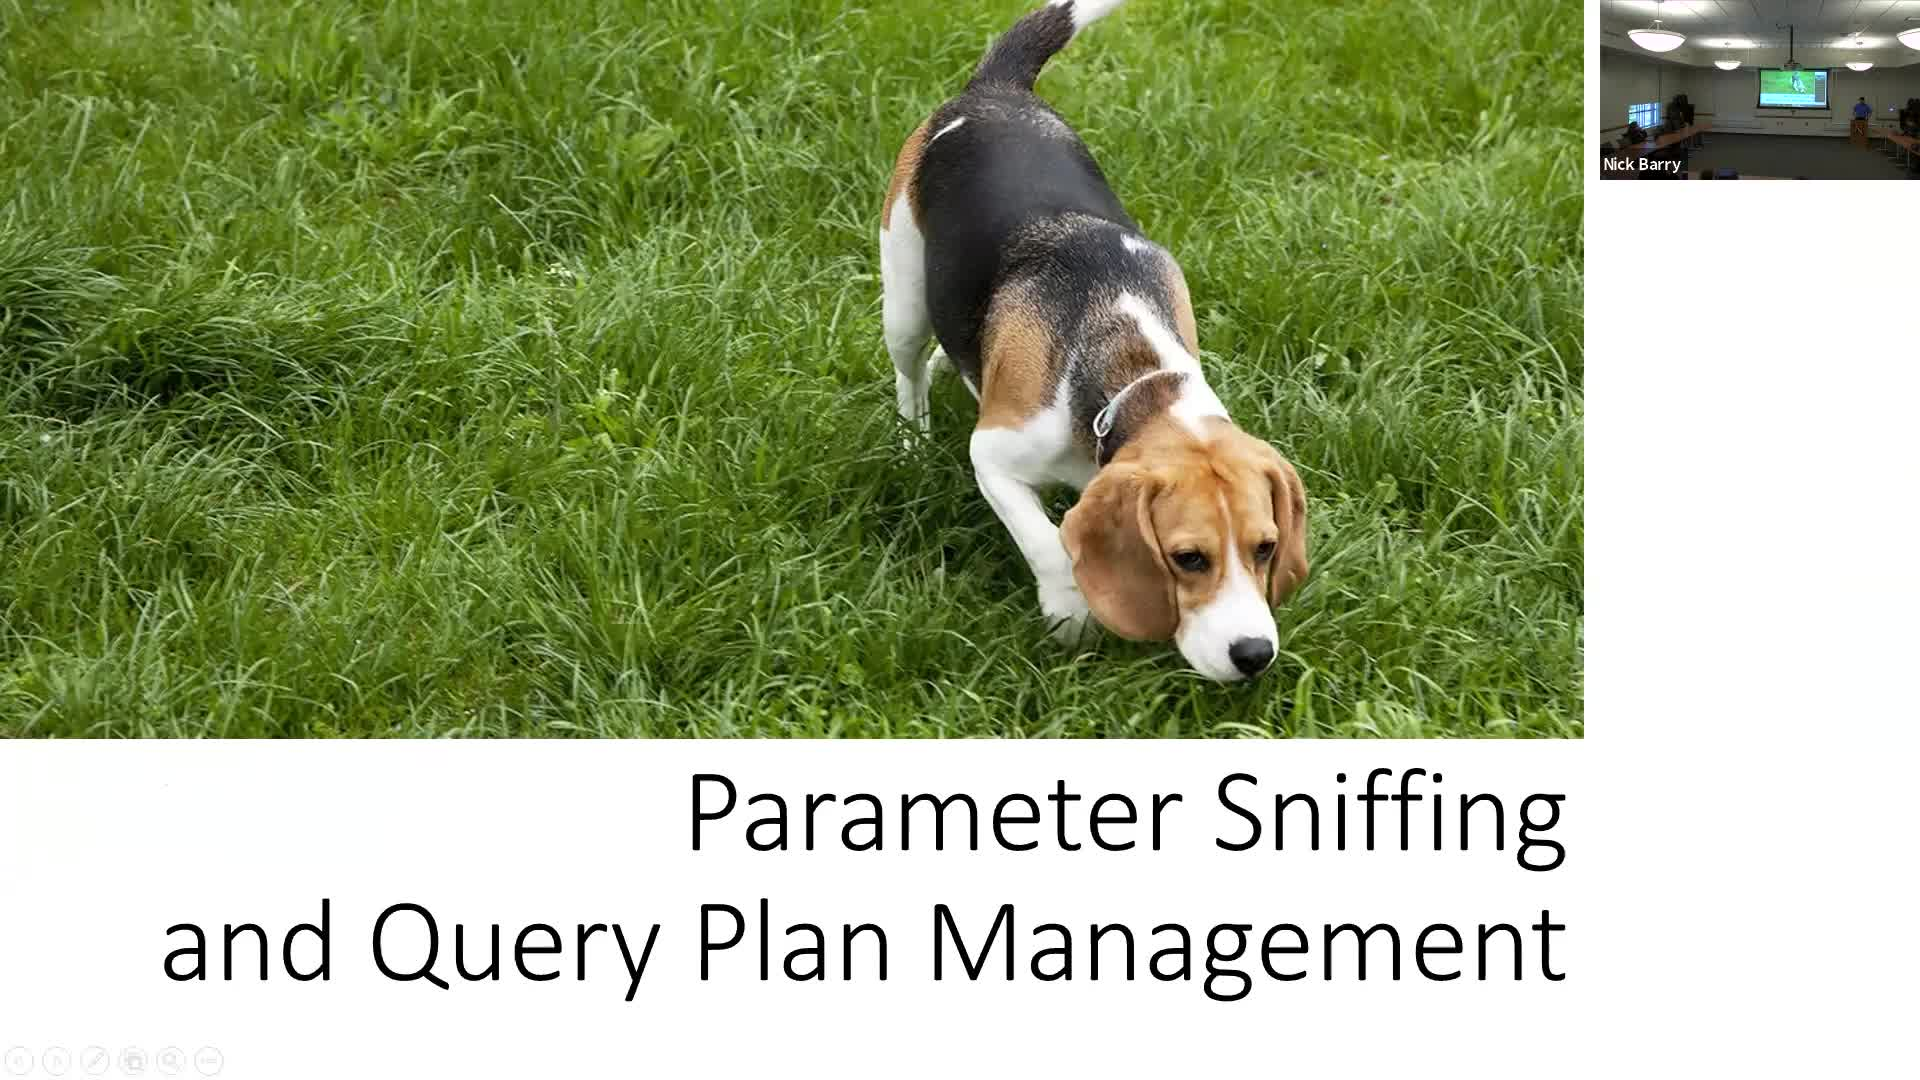 Parameter Sniffing and Query Plan Management in SQL Serve